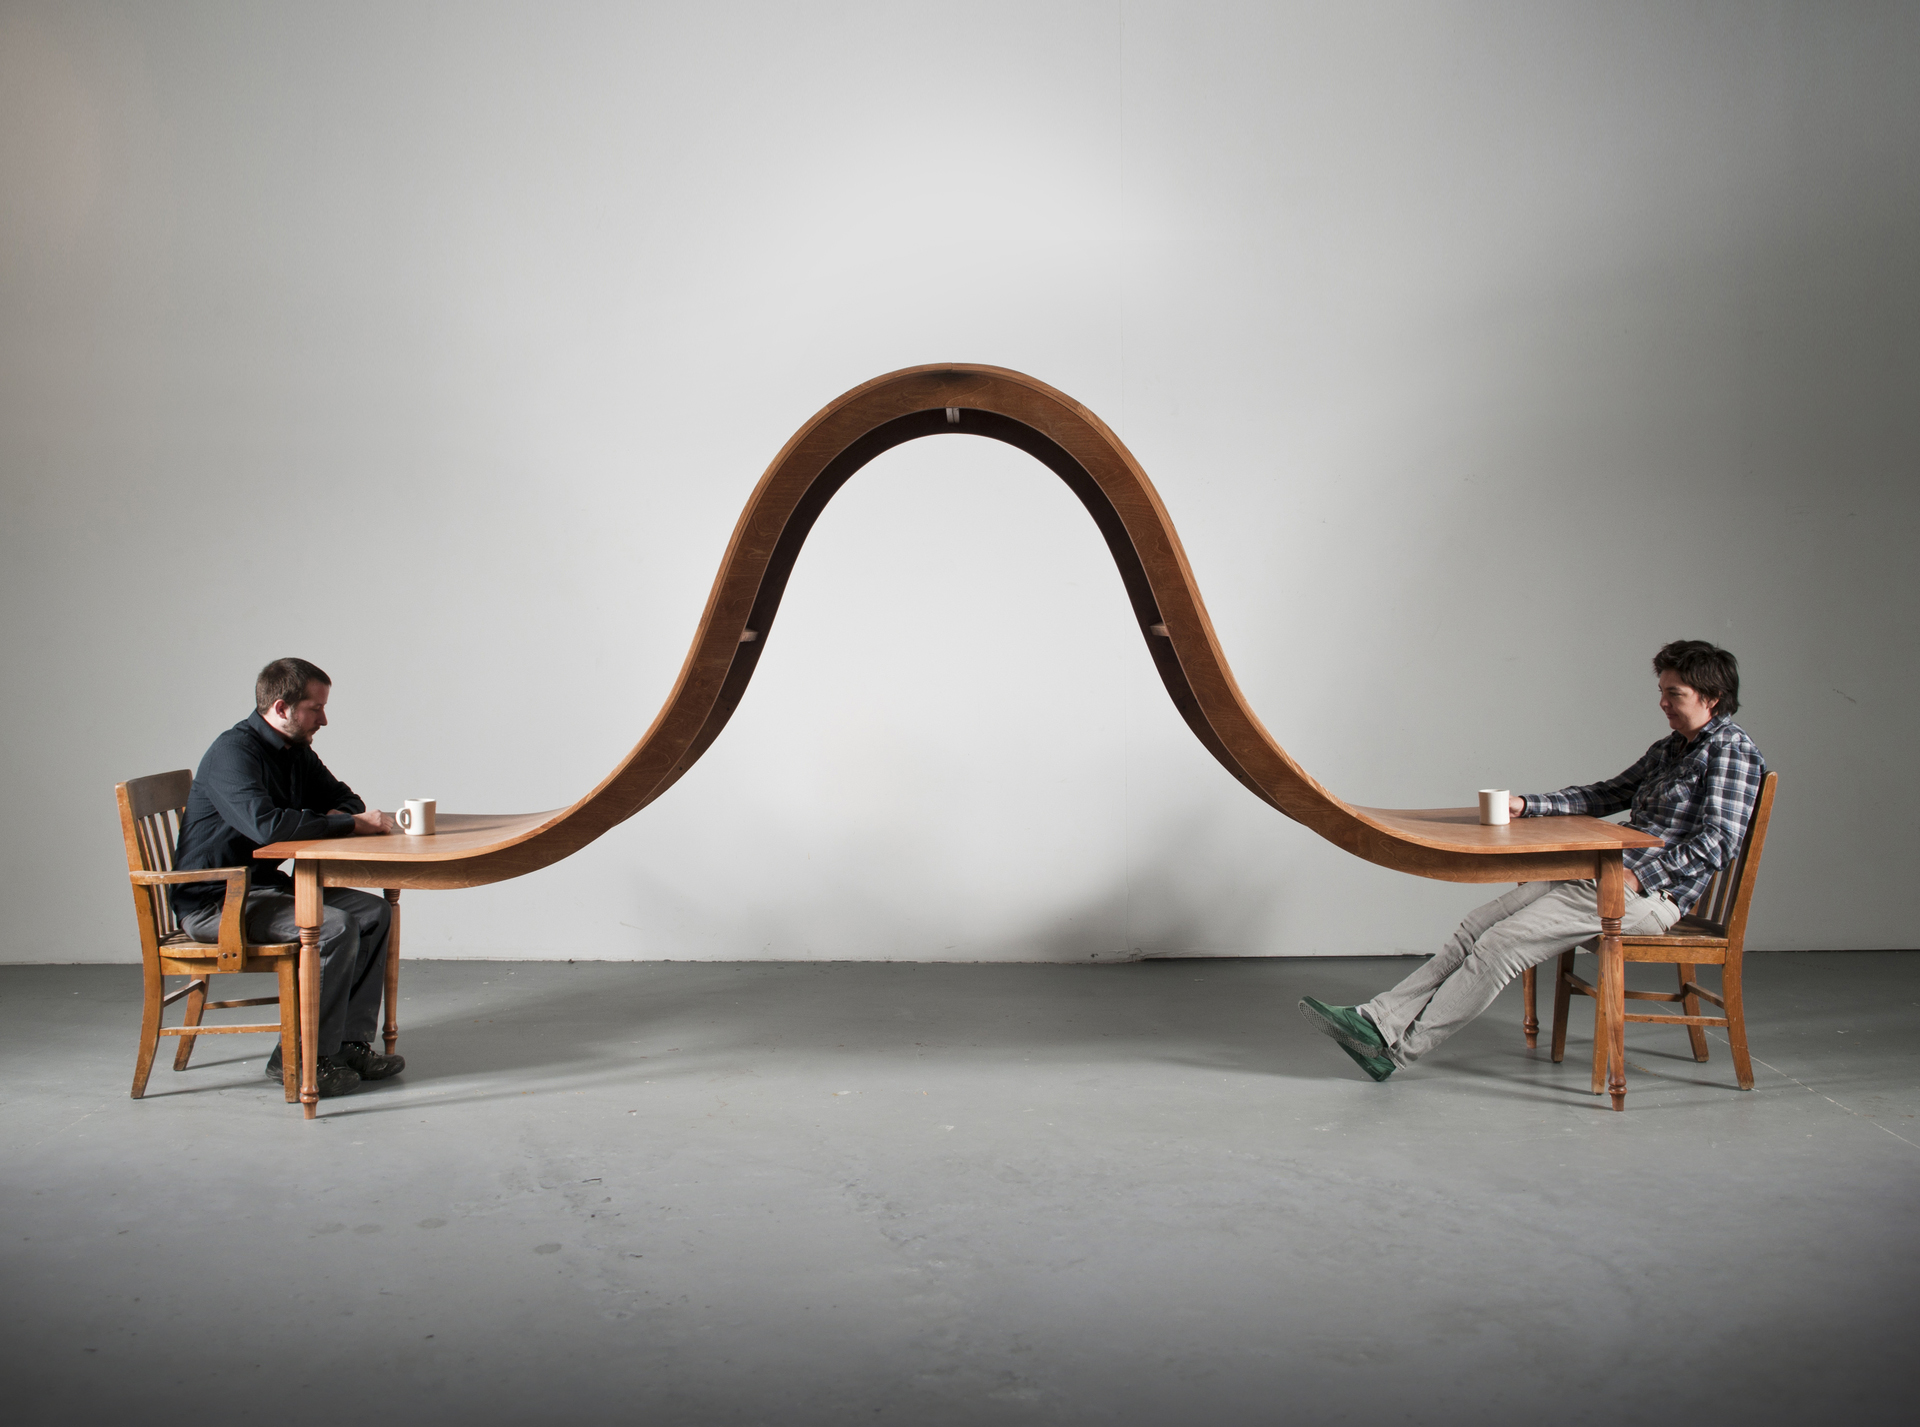 Image of The Twisted Furniture of Michael Beitz